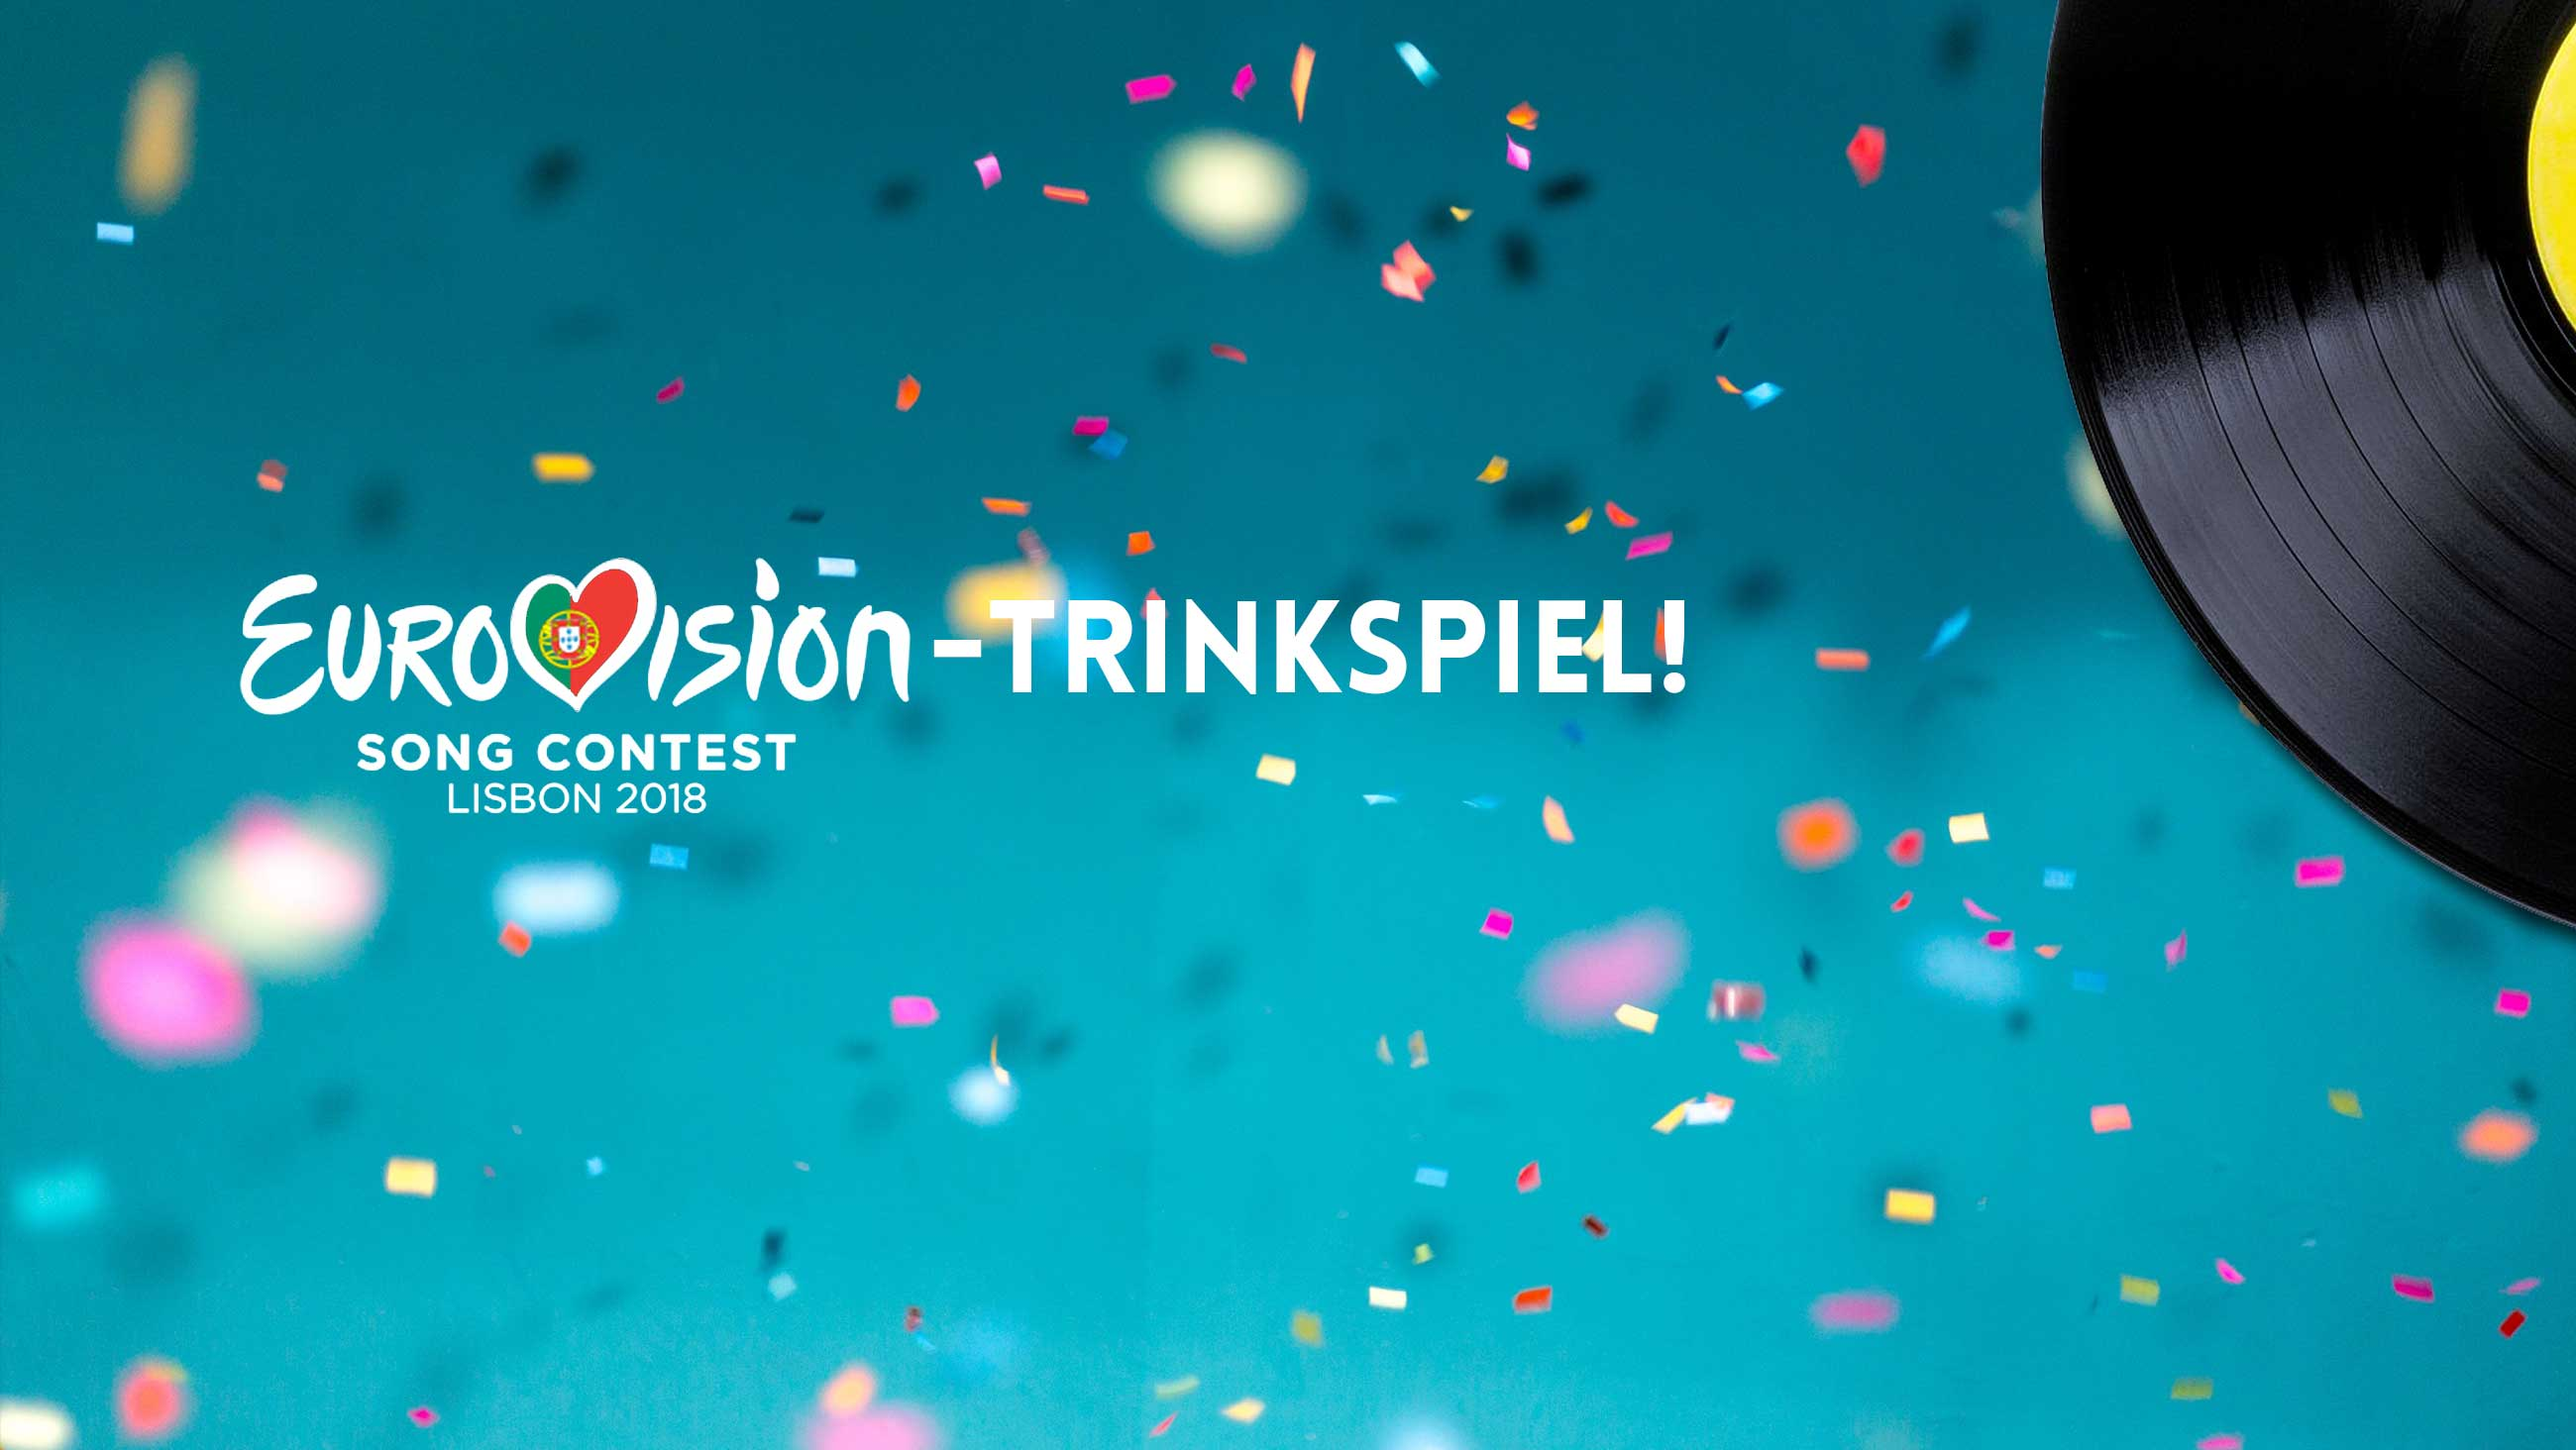 Eurovision Song Contest 2018: Trink- und Tippspiel ESC-cover-fb